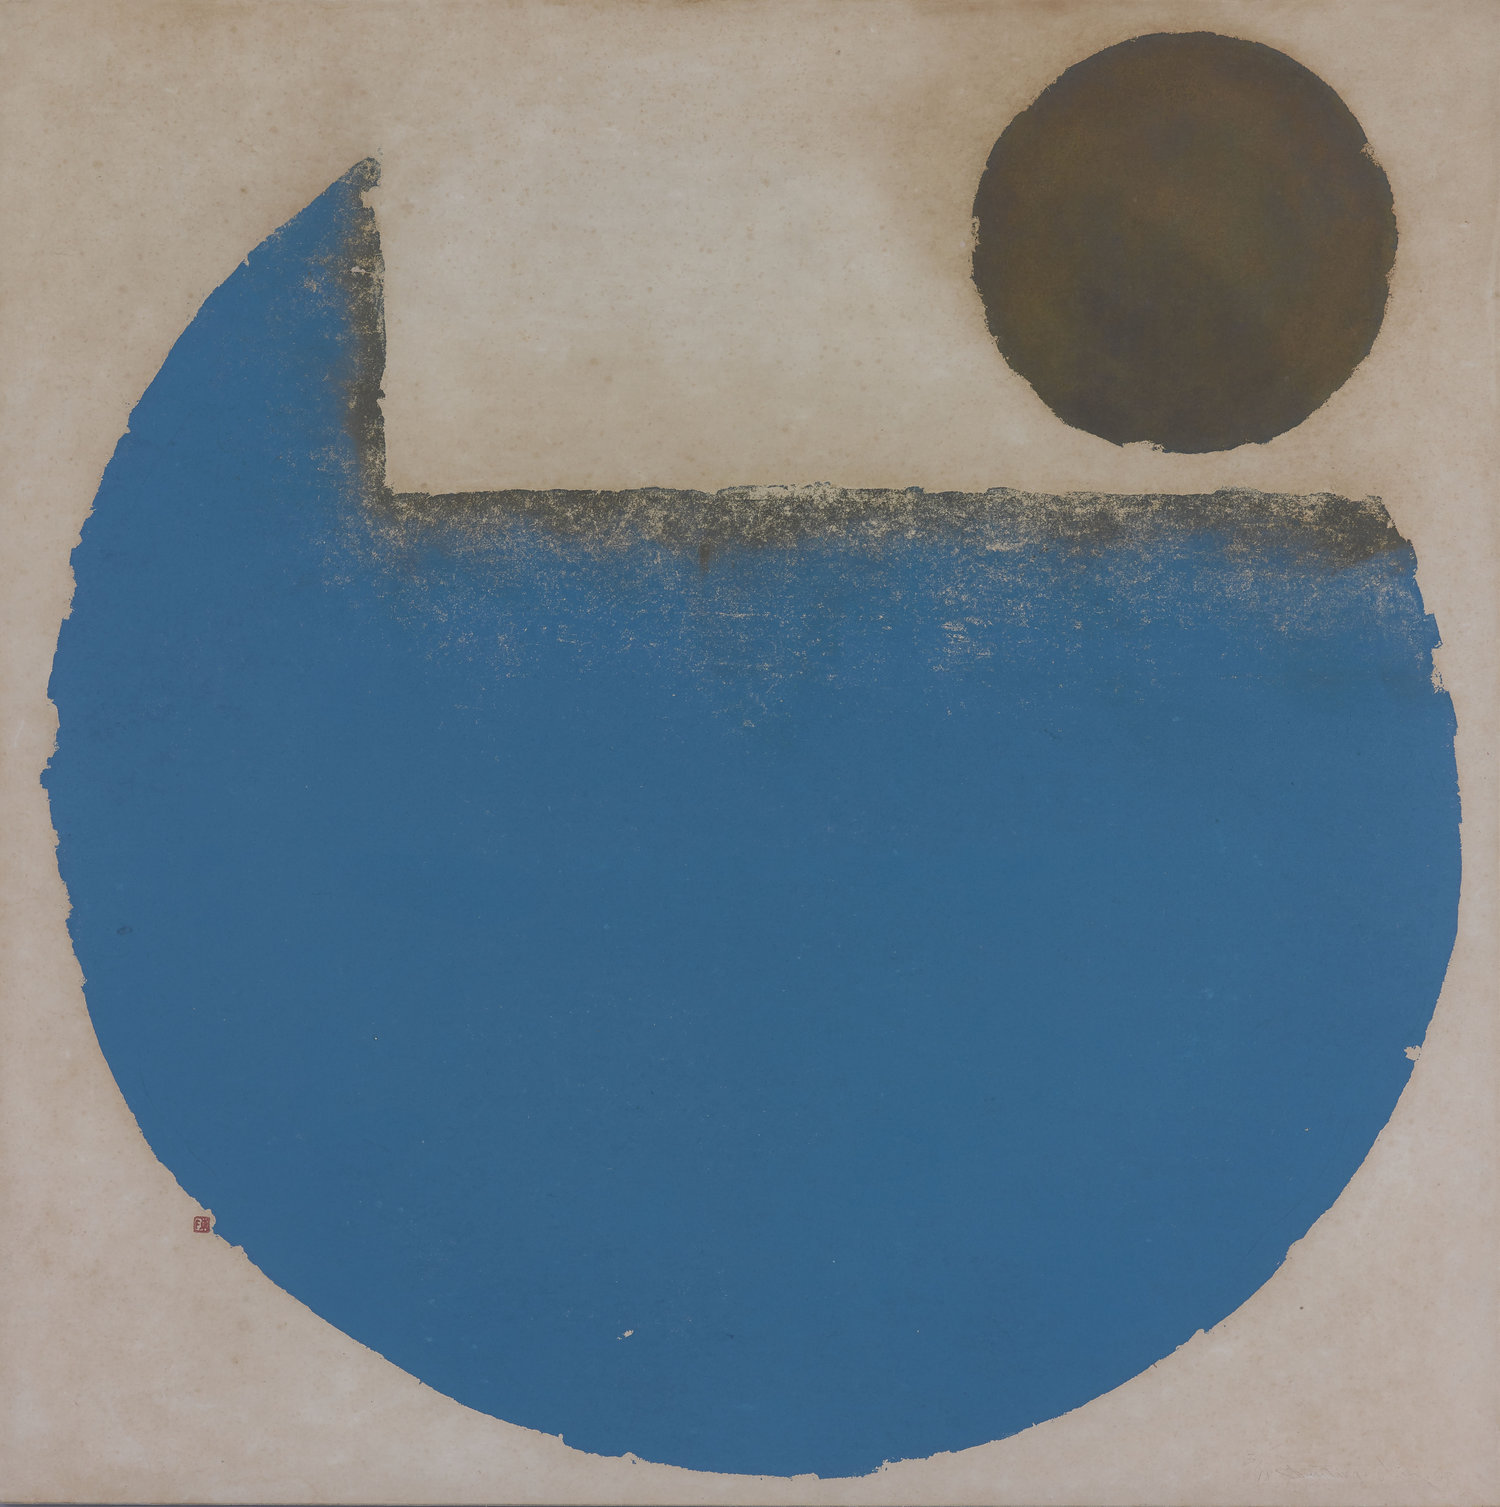 Chen Ting-Shih, Rhythm of the Sea, woodcut print, 91.5 x 91.5 cm, 1969